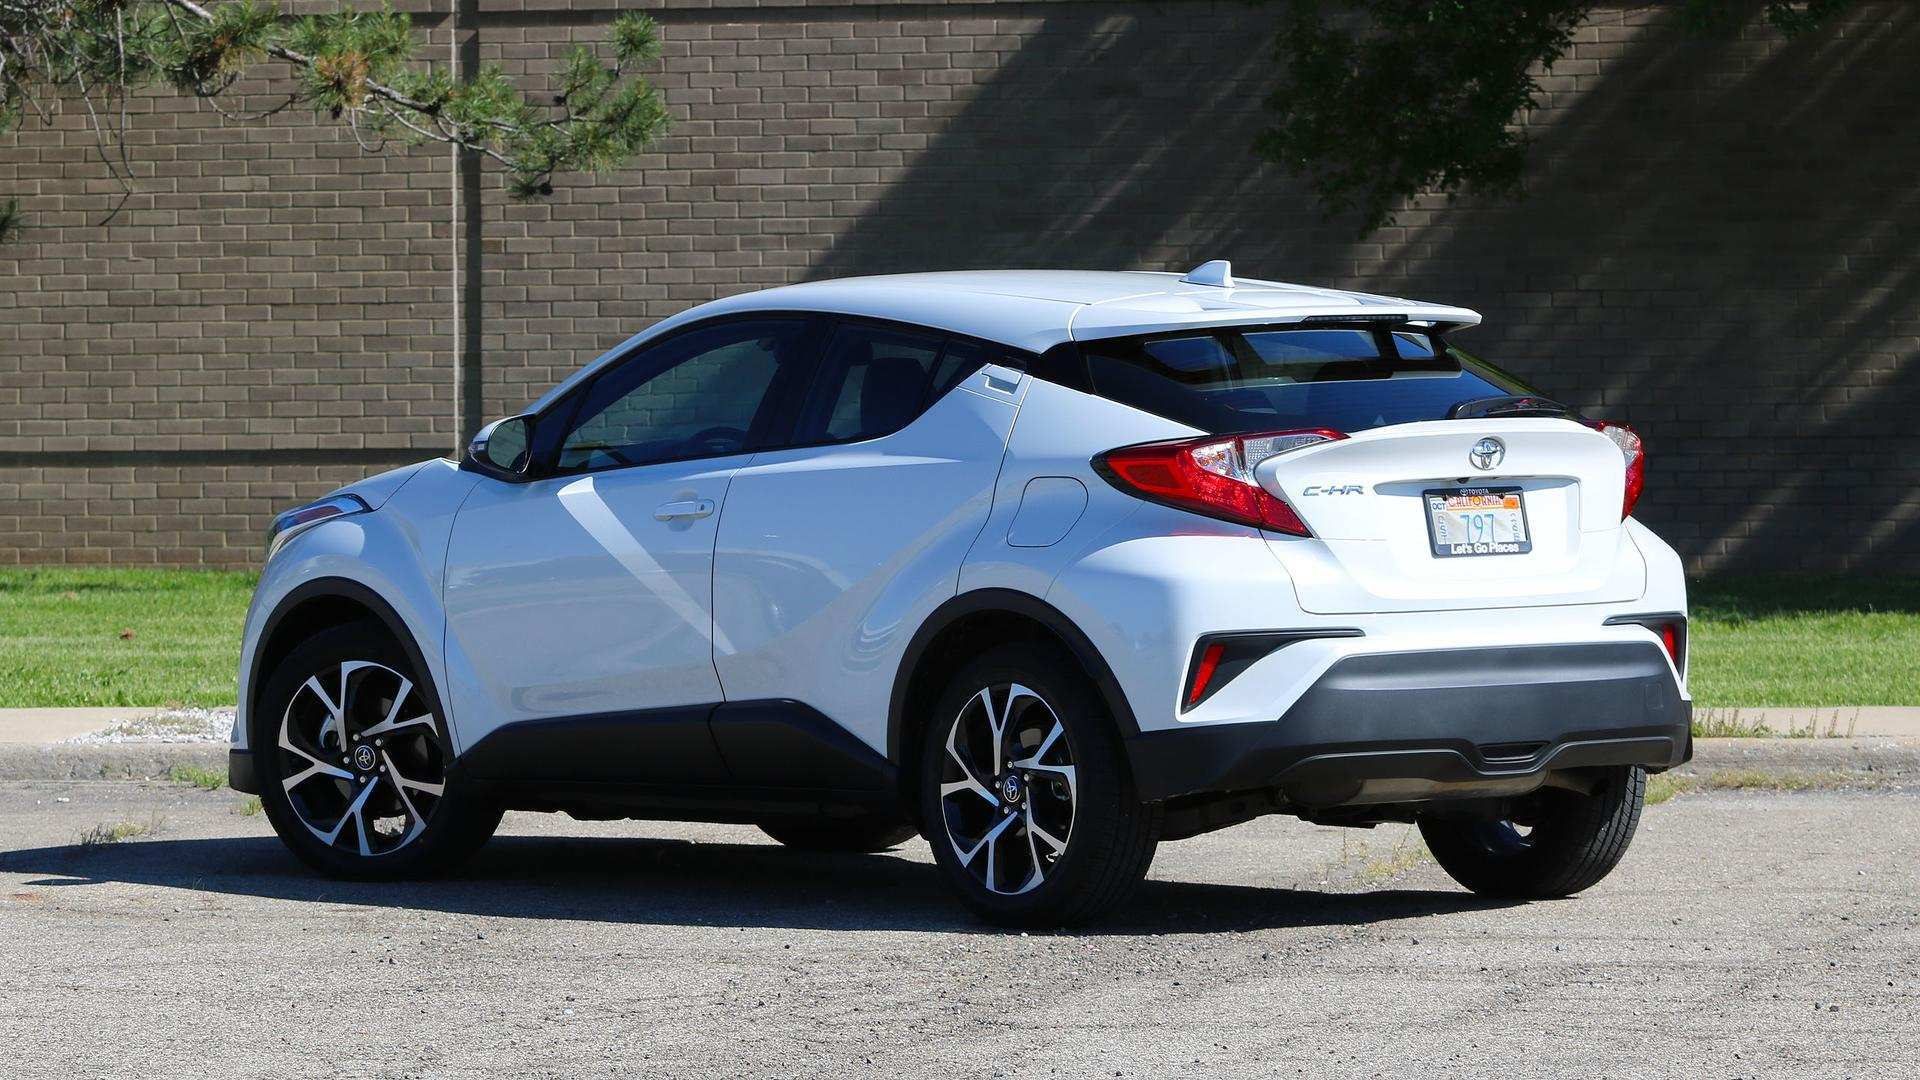 83 New 2019 Toyota C Hr Research New by 2019 Toyota C Hr